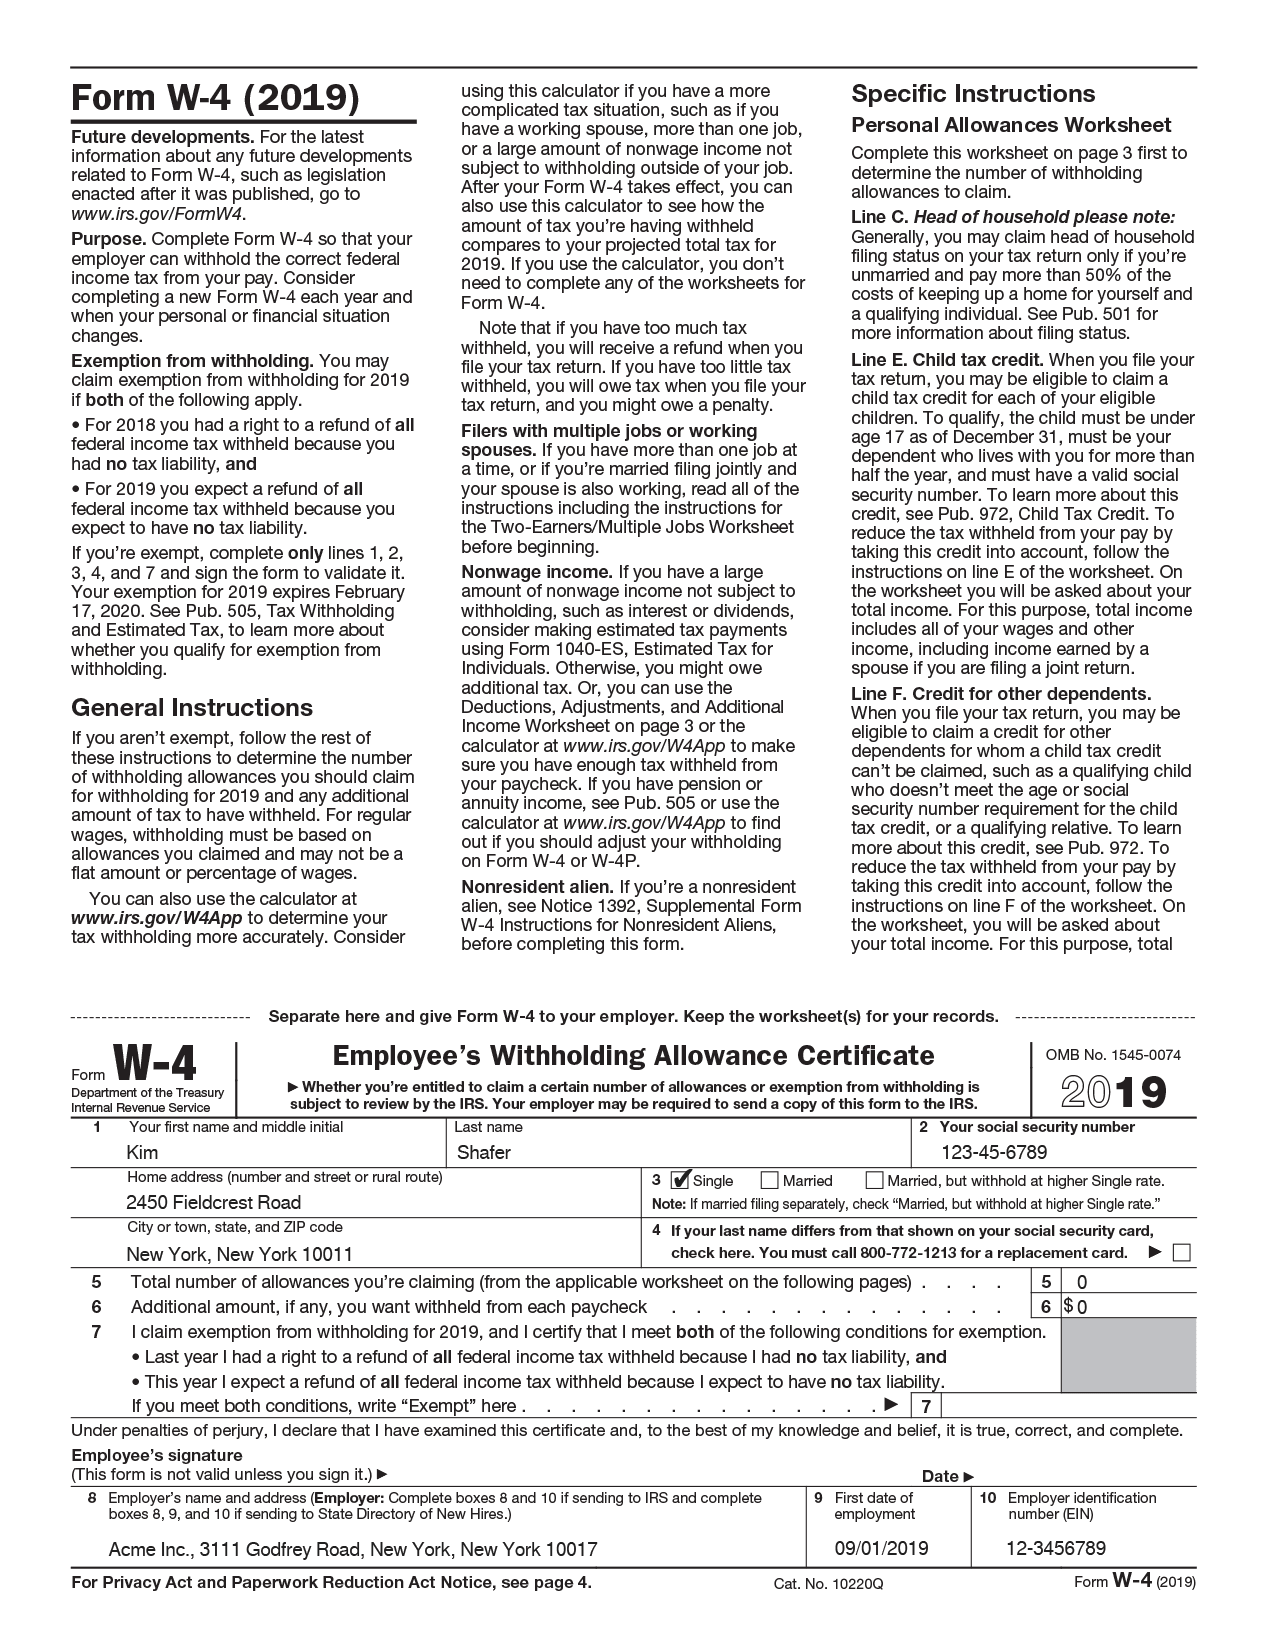 Form W-4 Preview